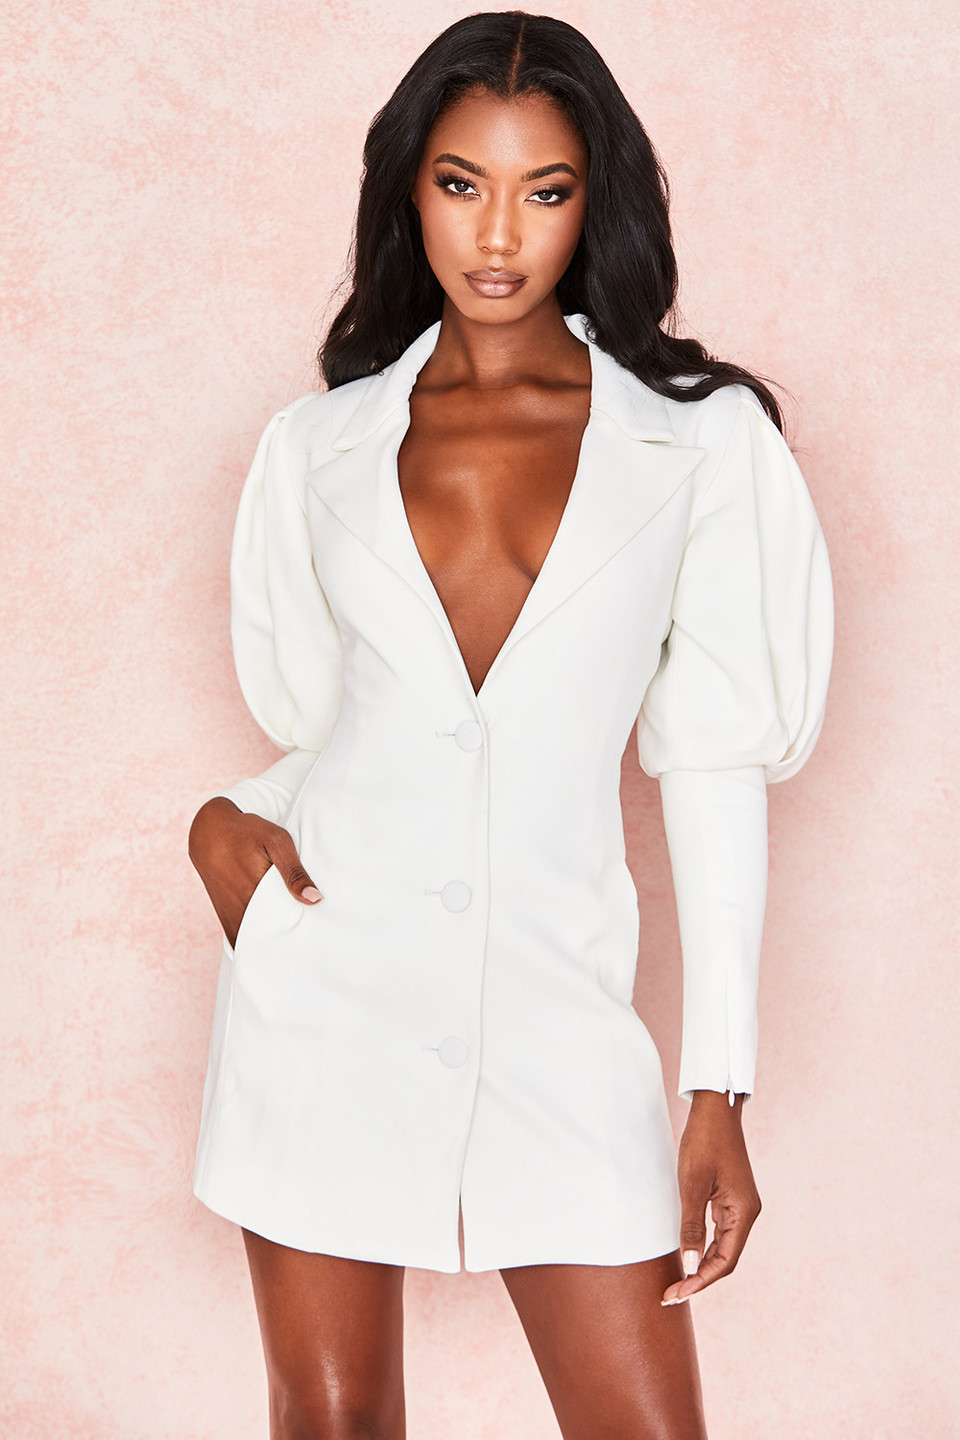 Saint Jean White Puff Sleeve Blazer Dress